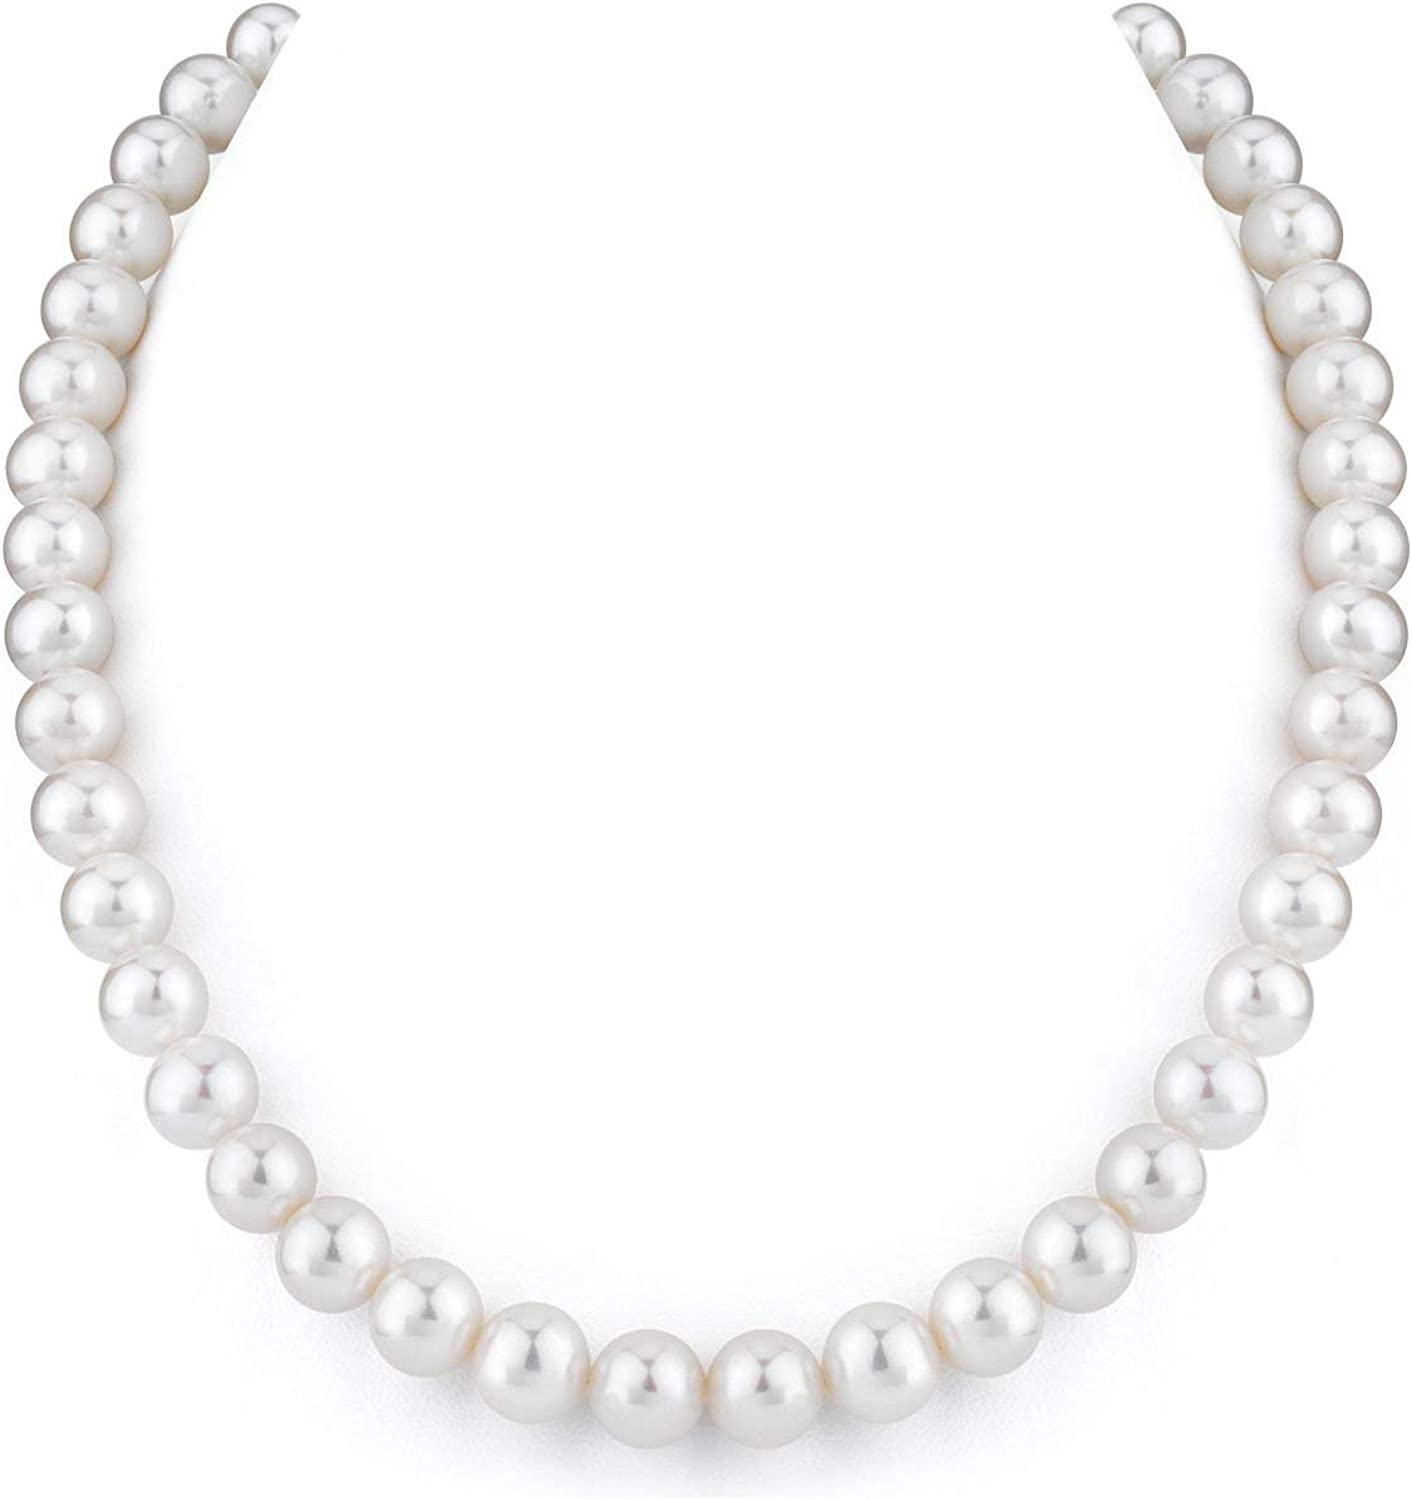 THE Classic Max 45% OFF PEARL SOURCE 14K Gold 9-10mm AAA White Cu Quality Freshwater